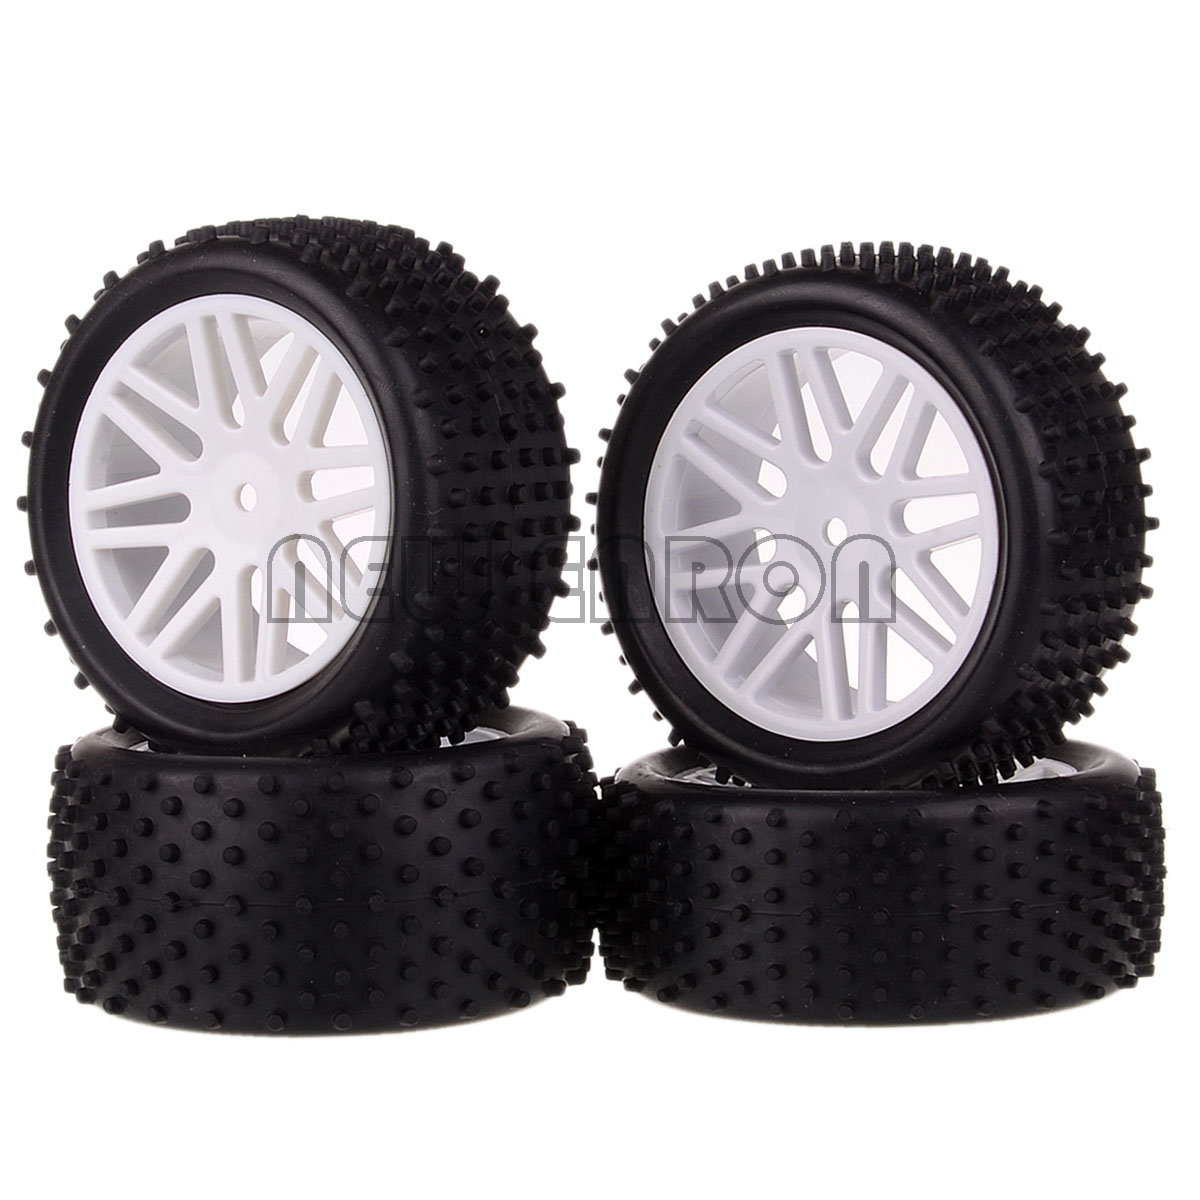 1:10 RC Off Road Buggy Rear Wheel Rim /& Tyre 06026 Tires Fit HSP Himoto Redcat